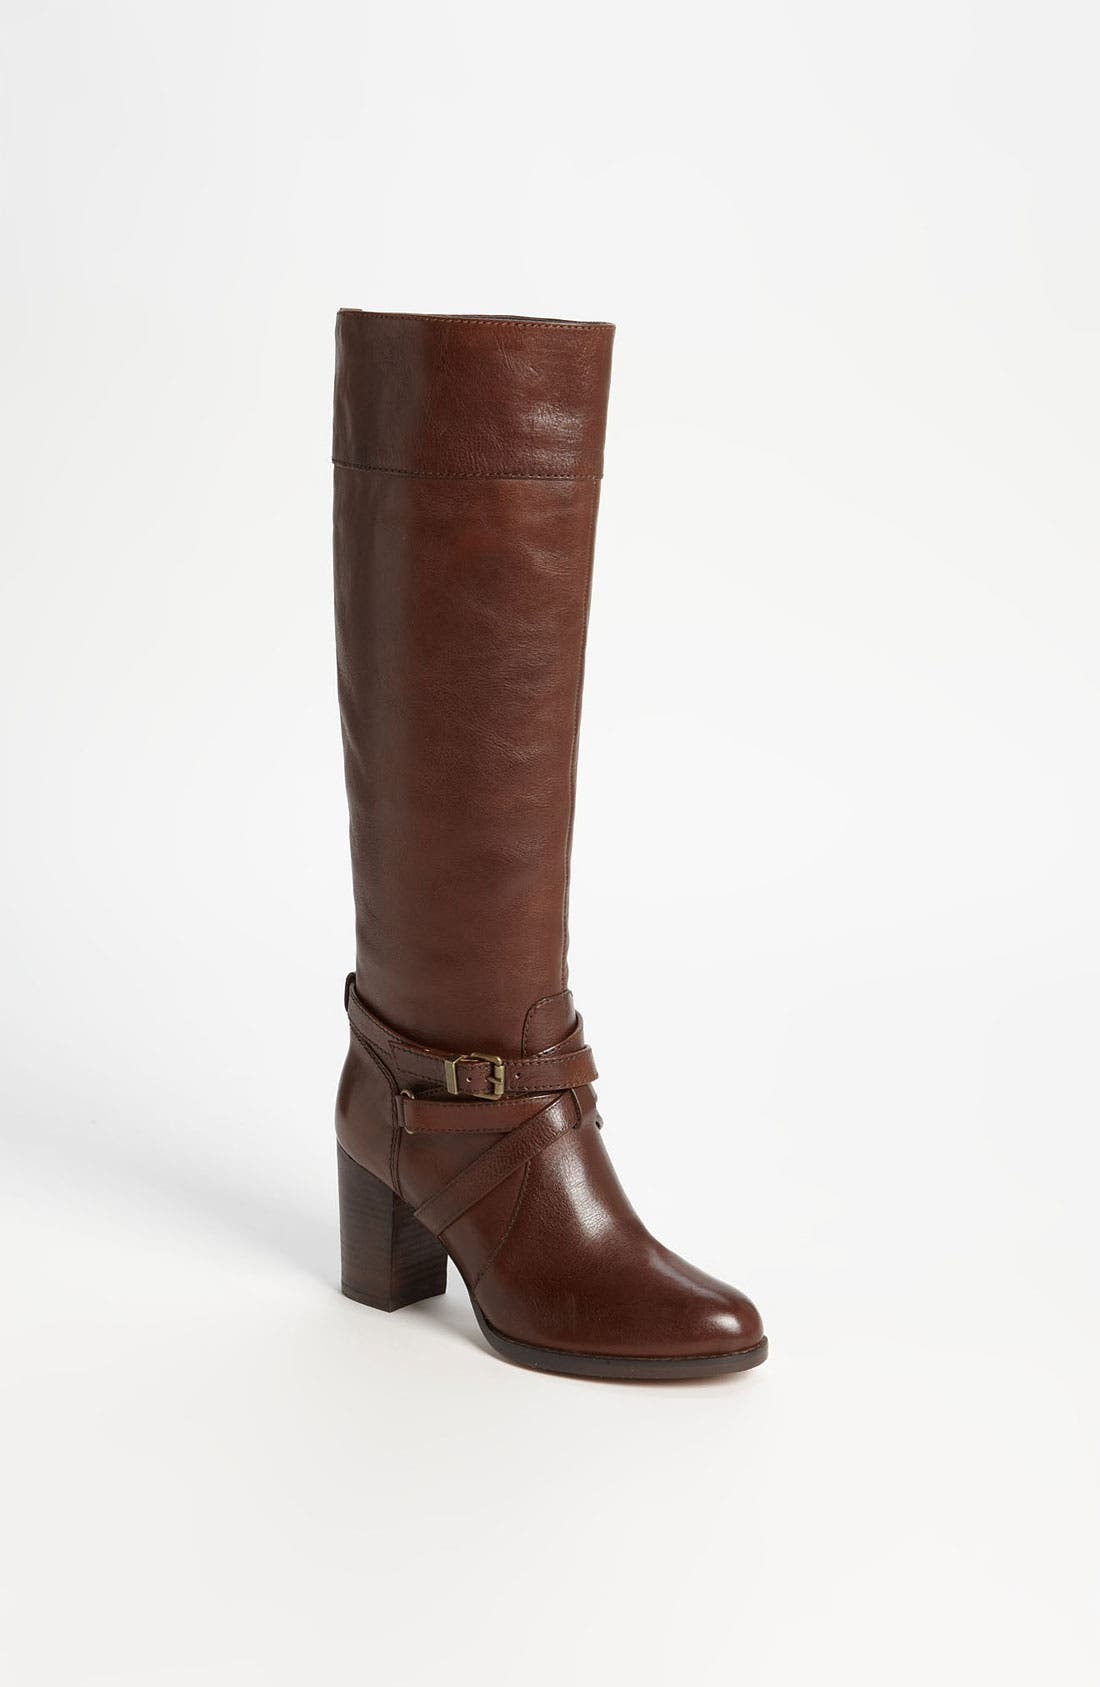 Main Image - 7 For All Mankind® 'Serita' Boot (Online Exclusive)